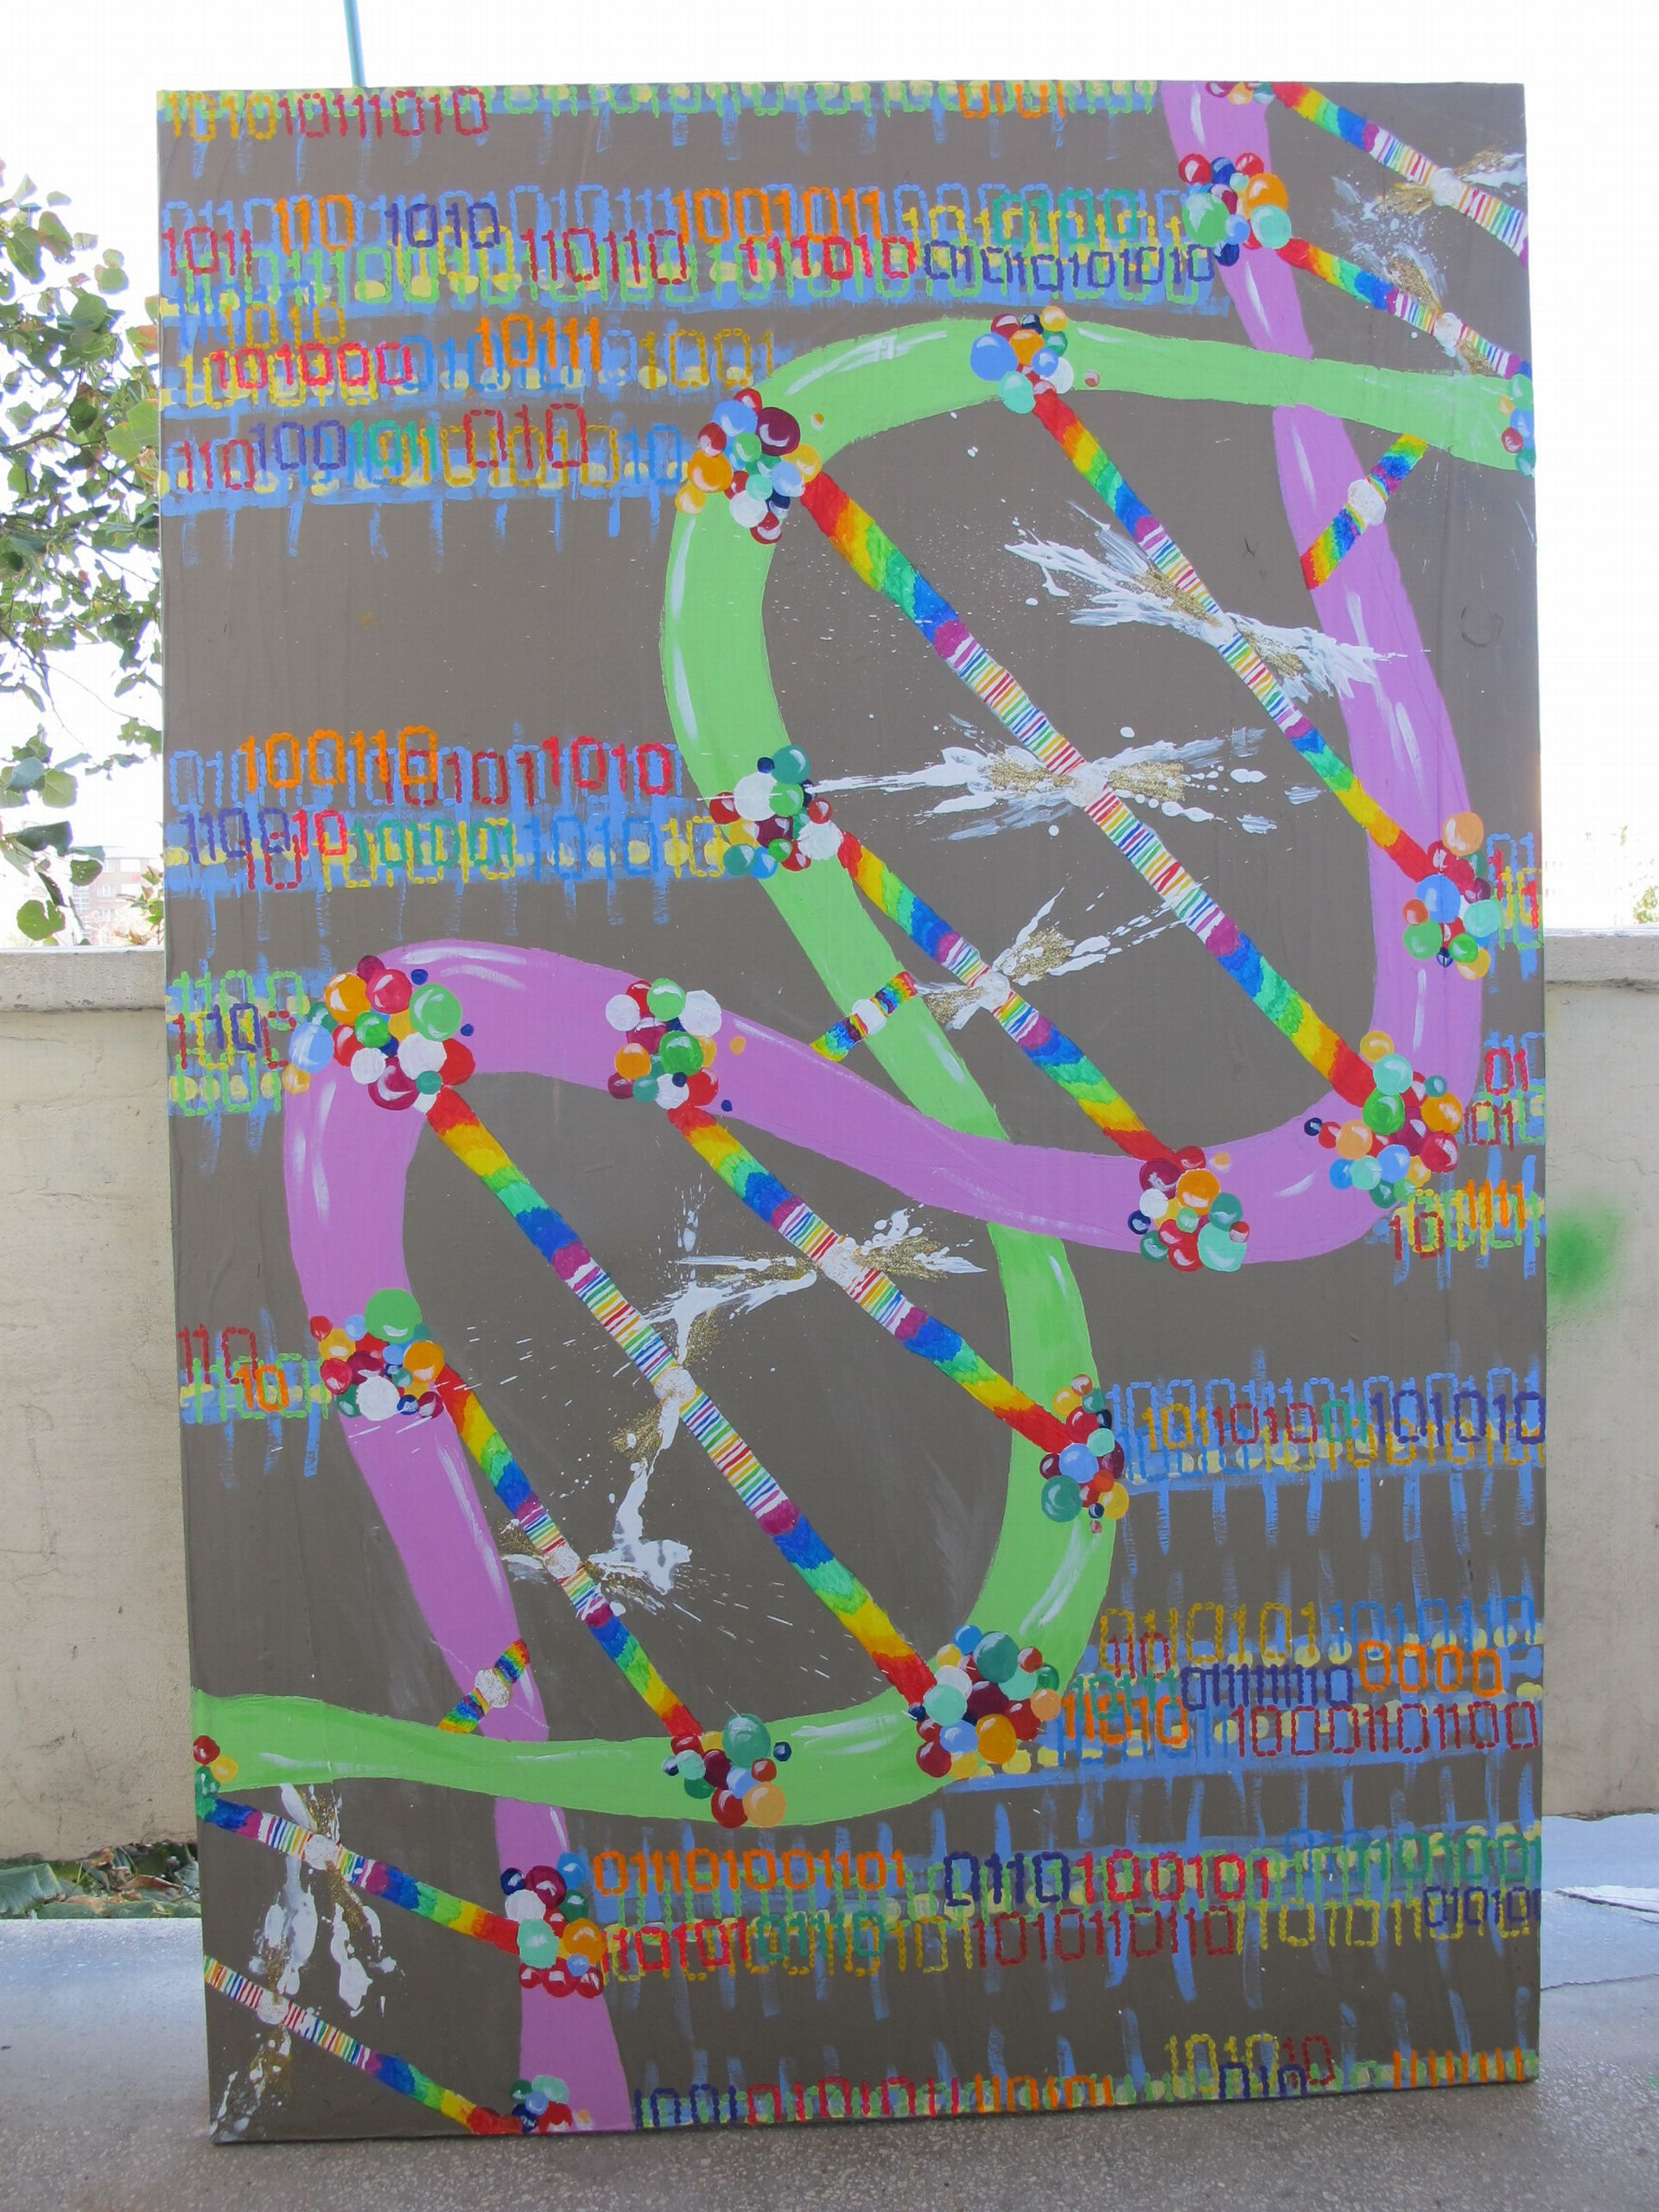 Injecting information, 2012, Adela Parvu